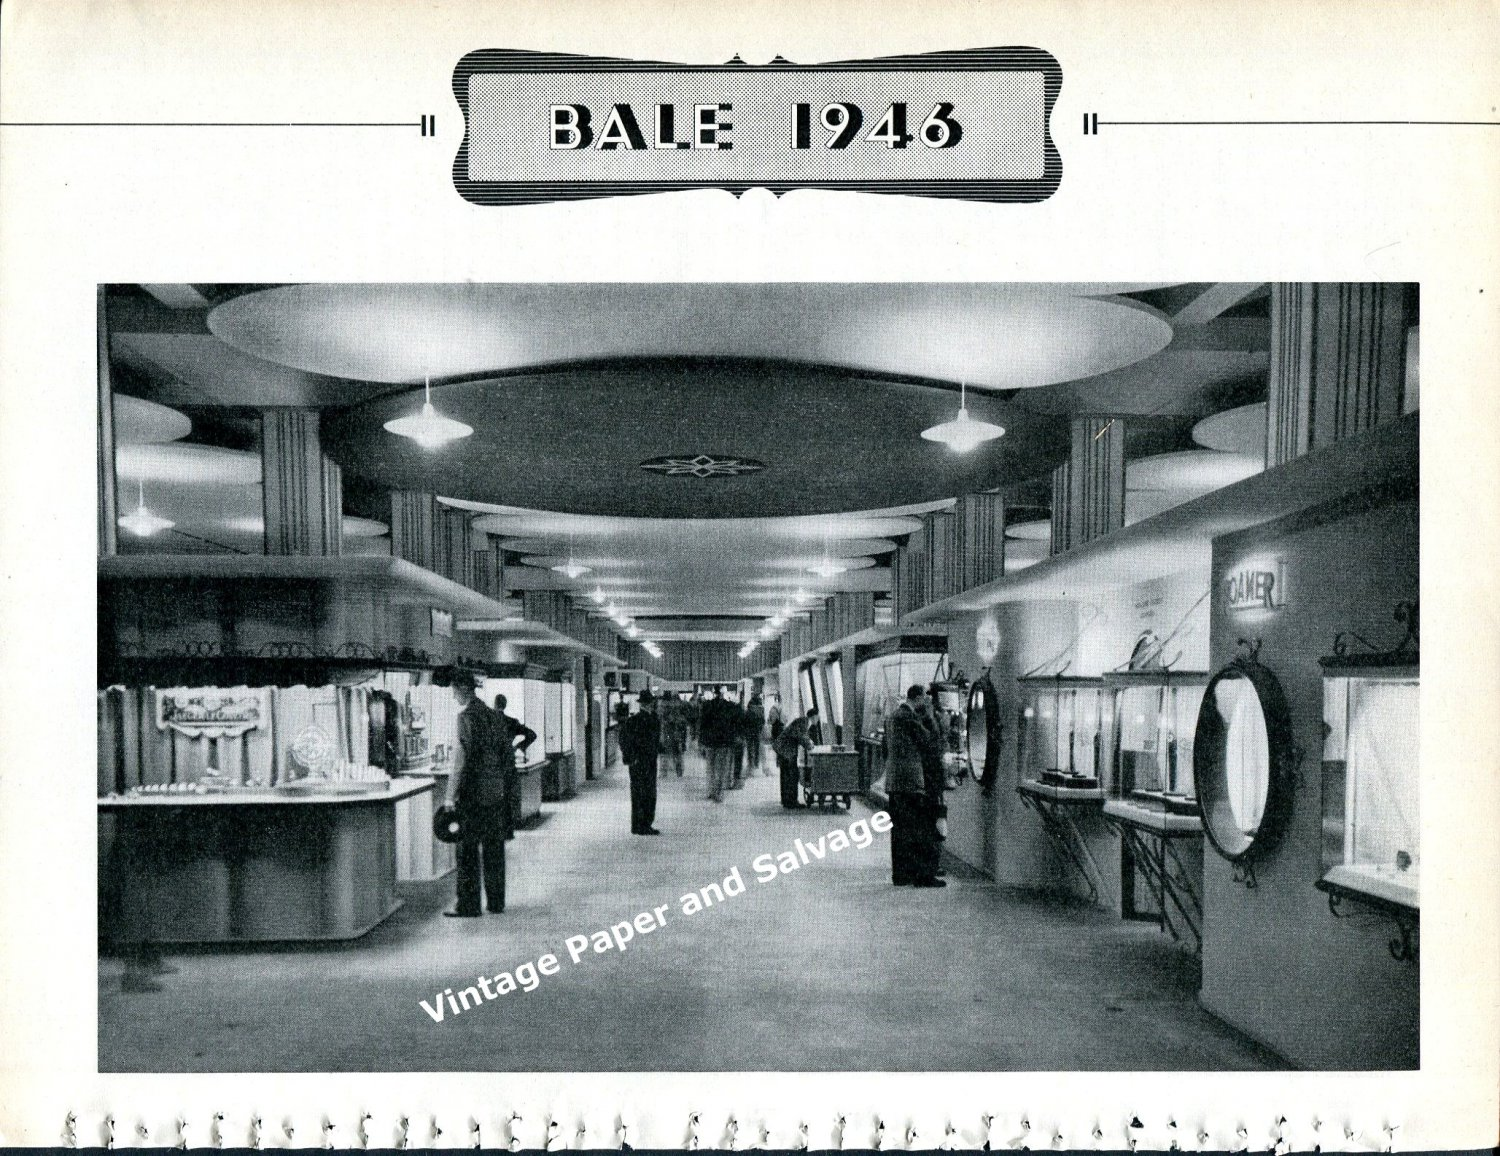 Vintage 1946 Swiss Watch Fair Basel Switzerland Exhibitor Photos Foire de Bale Suisse